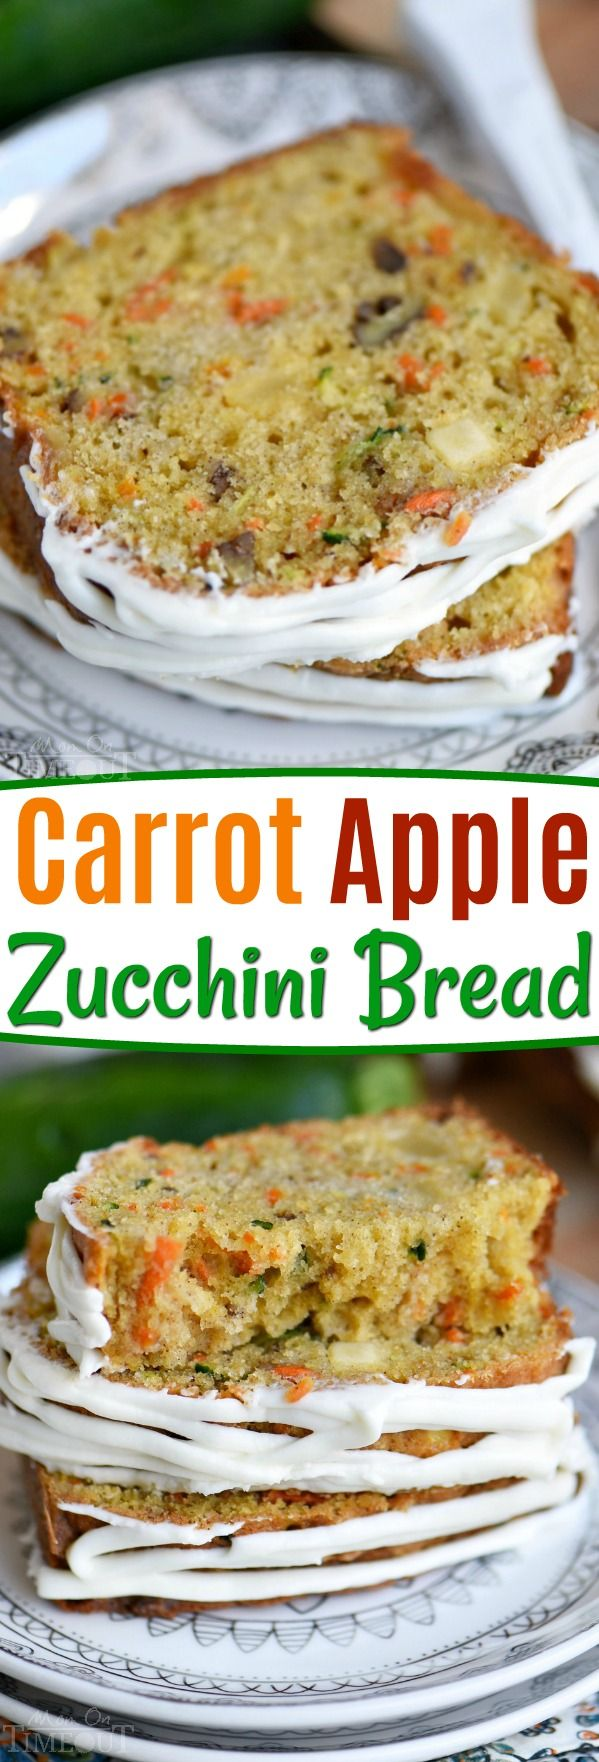 Carrot Apple Zucchini Bread -  This Carrot Apple Zucchini Bread recipe is incredibly moist and flavorful! Vibrant colors from the carrot, apple, and zucchini makes this quick bread irresisitble! Sure to be a new favorite!